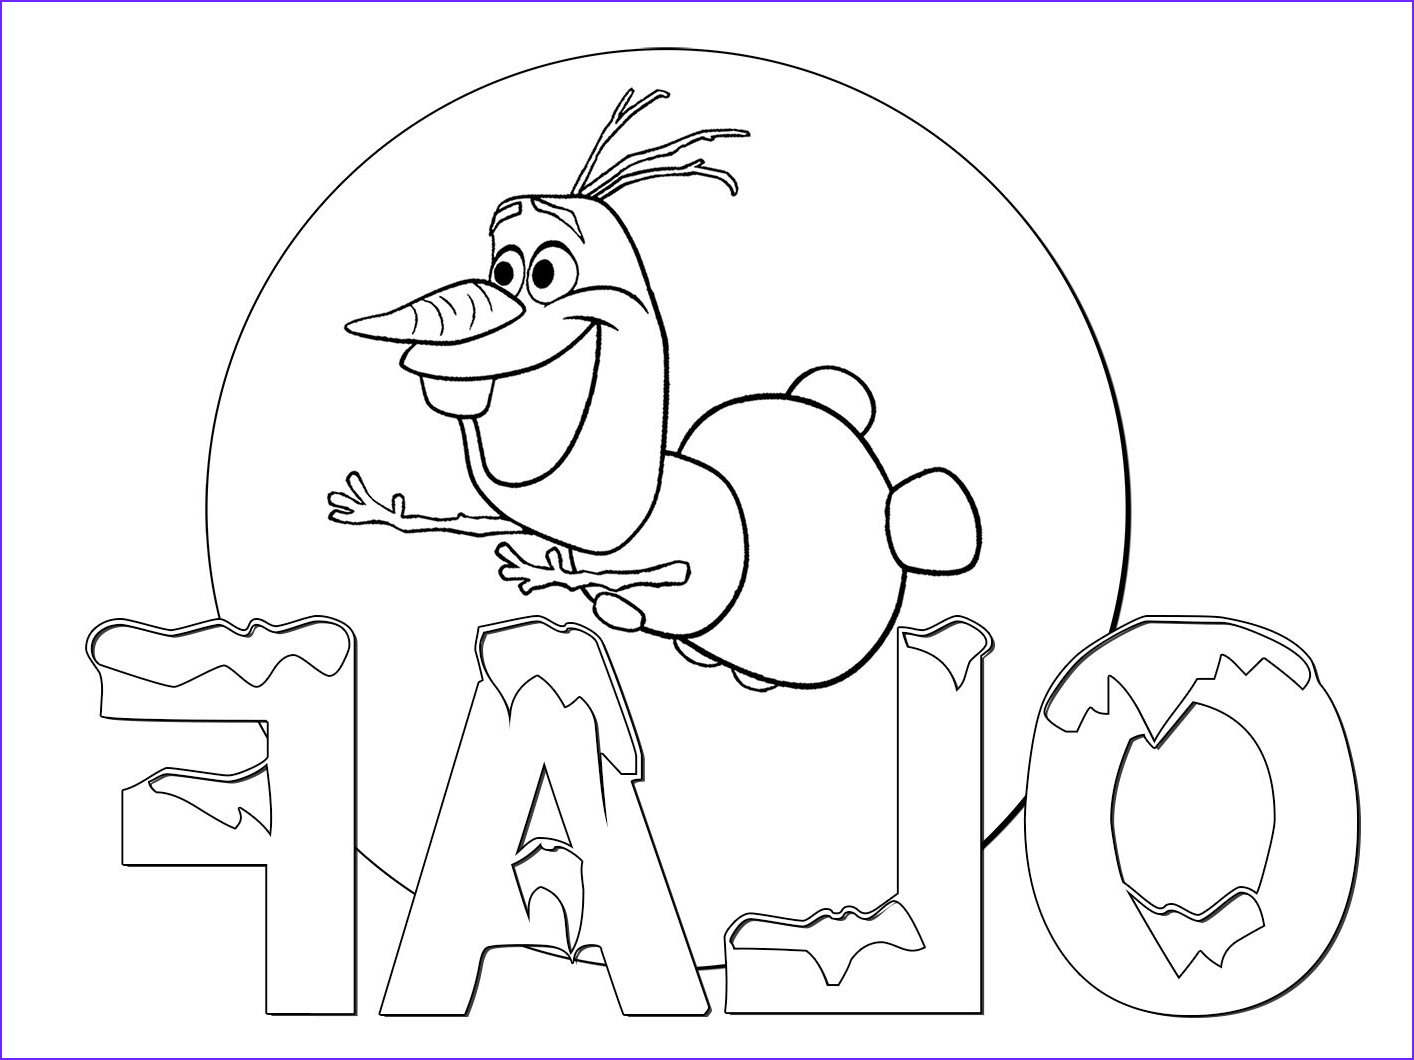 Character Coloring Page Inspirational Collection Disneys Frozen Character Coloring Pages